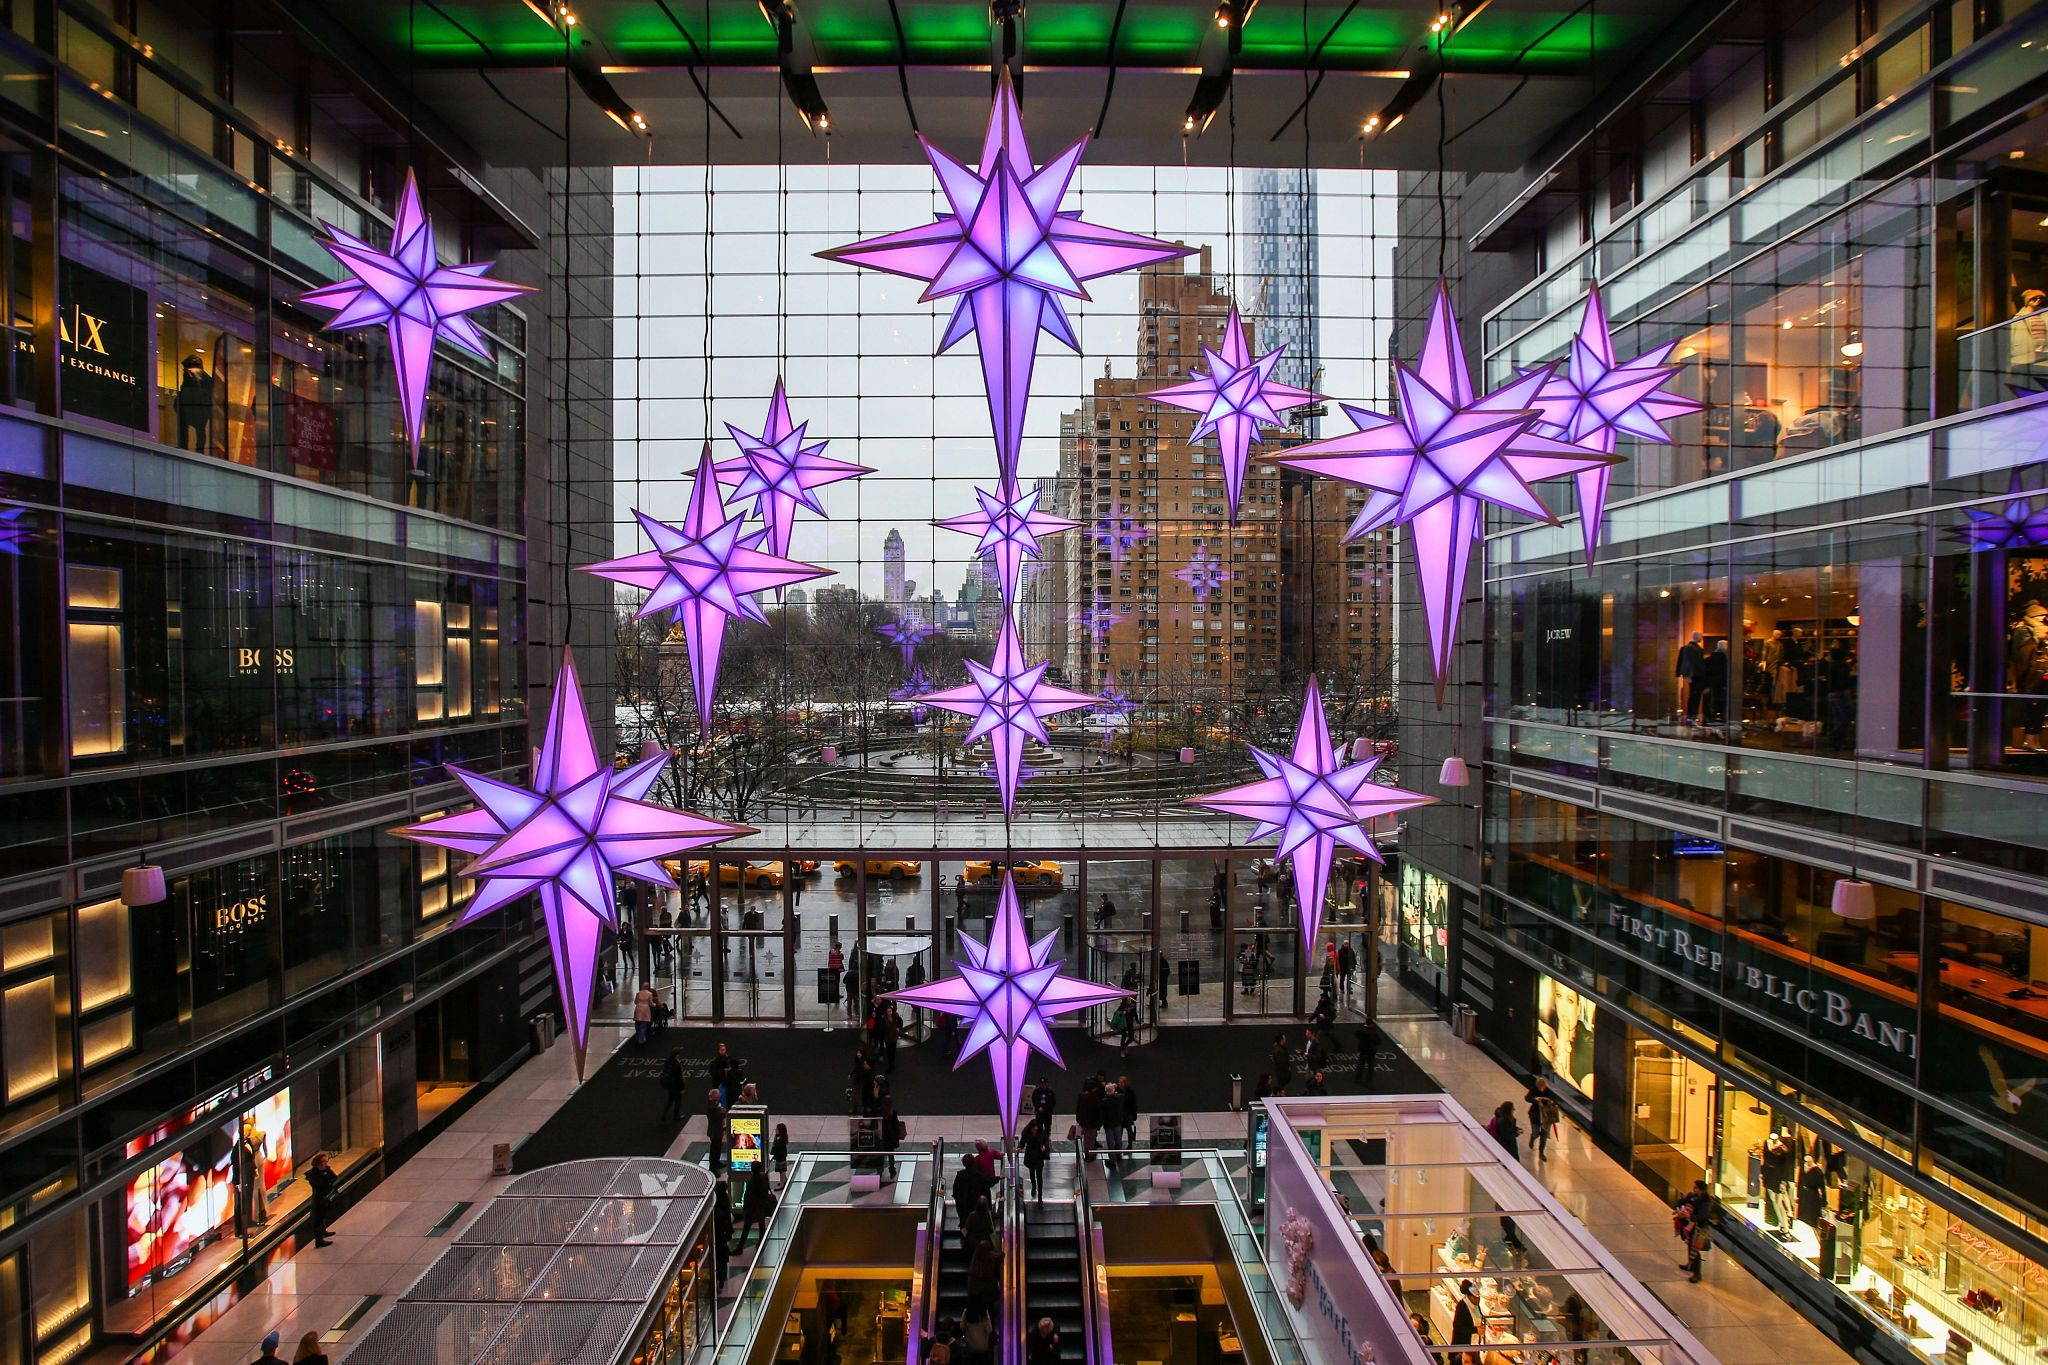 ICSC projects the average U.S. shopper is planning to spend $637 on gifts and other holiday-related items this year, an 8.9% increase over 2020. (Getty Images)